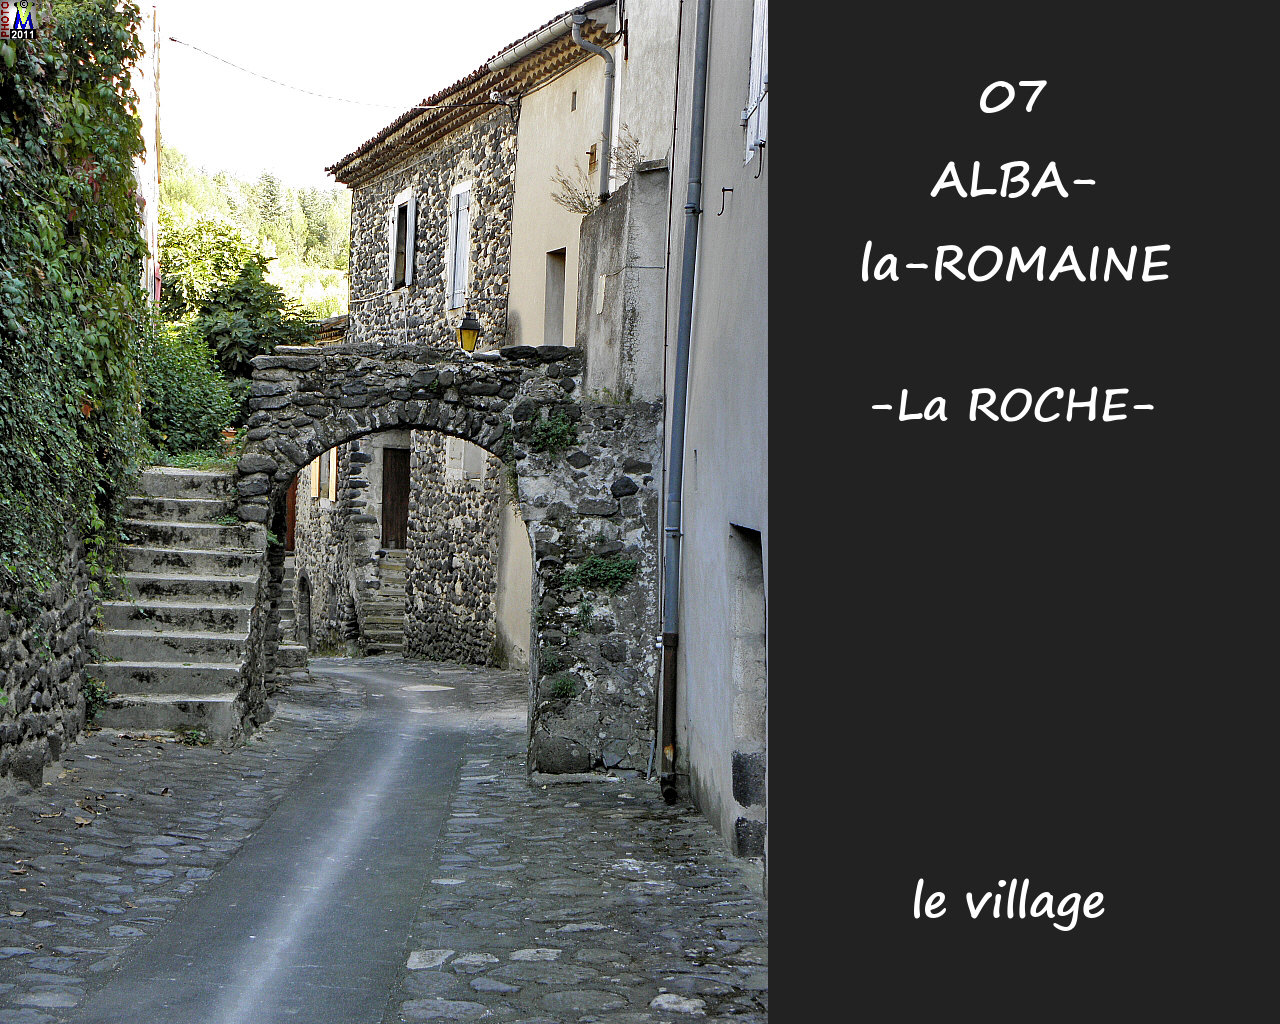 07ALBA-ROMAINEzROCHE_village_132.jpg